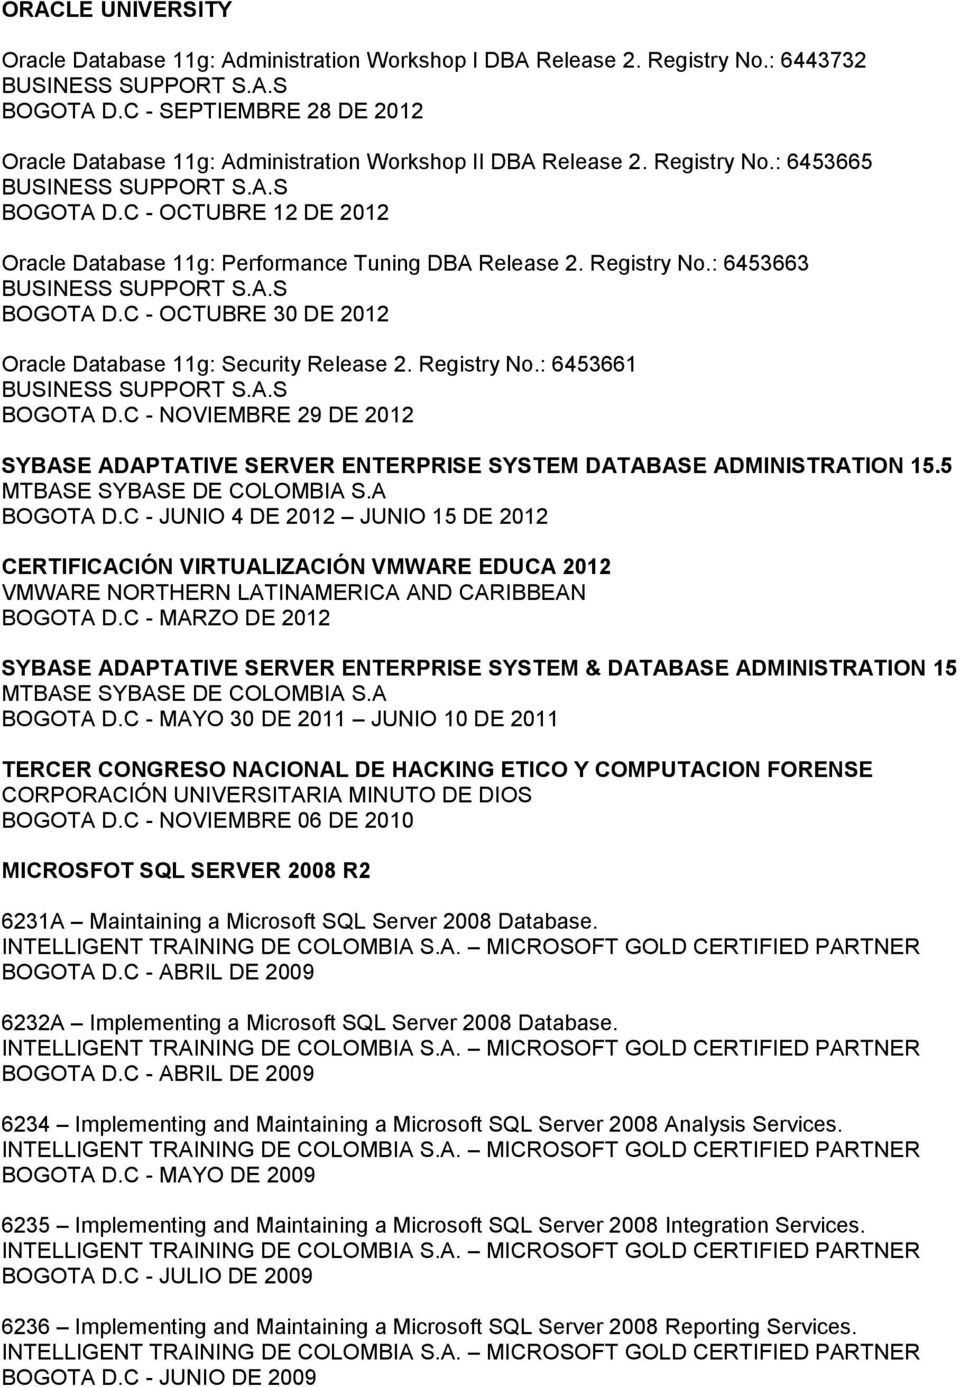 C - OCTUBRE 12 DE 2012 Oracle Database 11g: Performance Tuning DBA Release 2. Registry No.: 6453663 BUSINESS SUPPORT S.A.S BOGOTA D.C - OCTUBRE 30 DE 2012 Oracle Database 11g: Security Release 2.